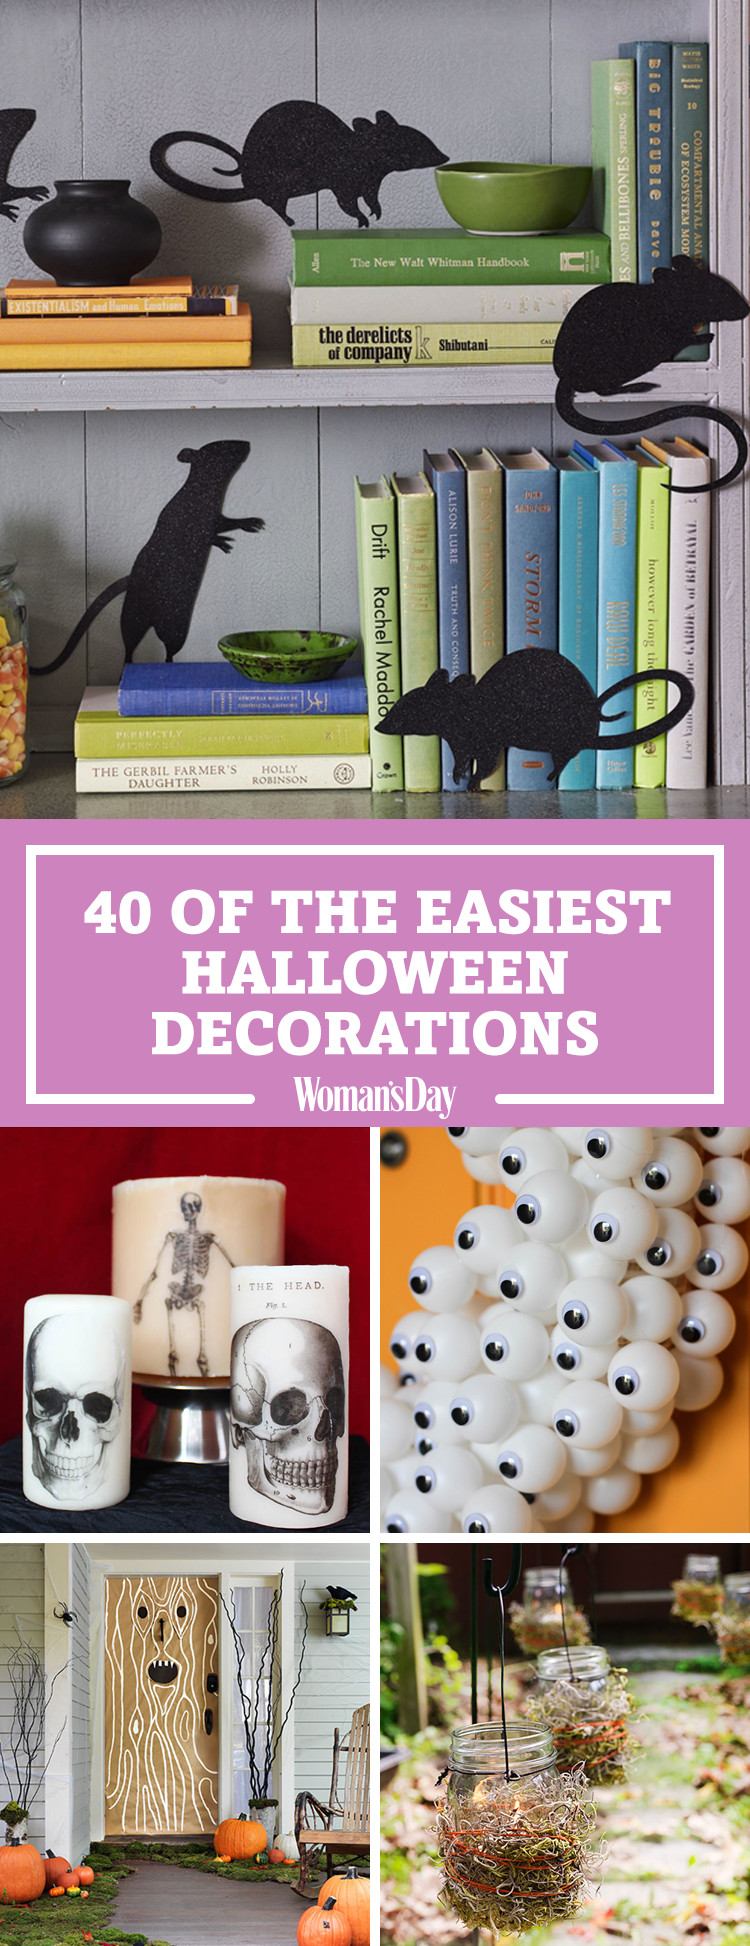 50 Of The Easiest Spookiest Halloween Decorations